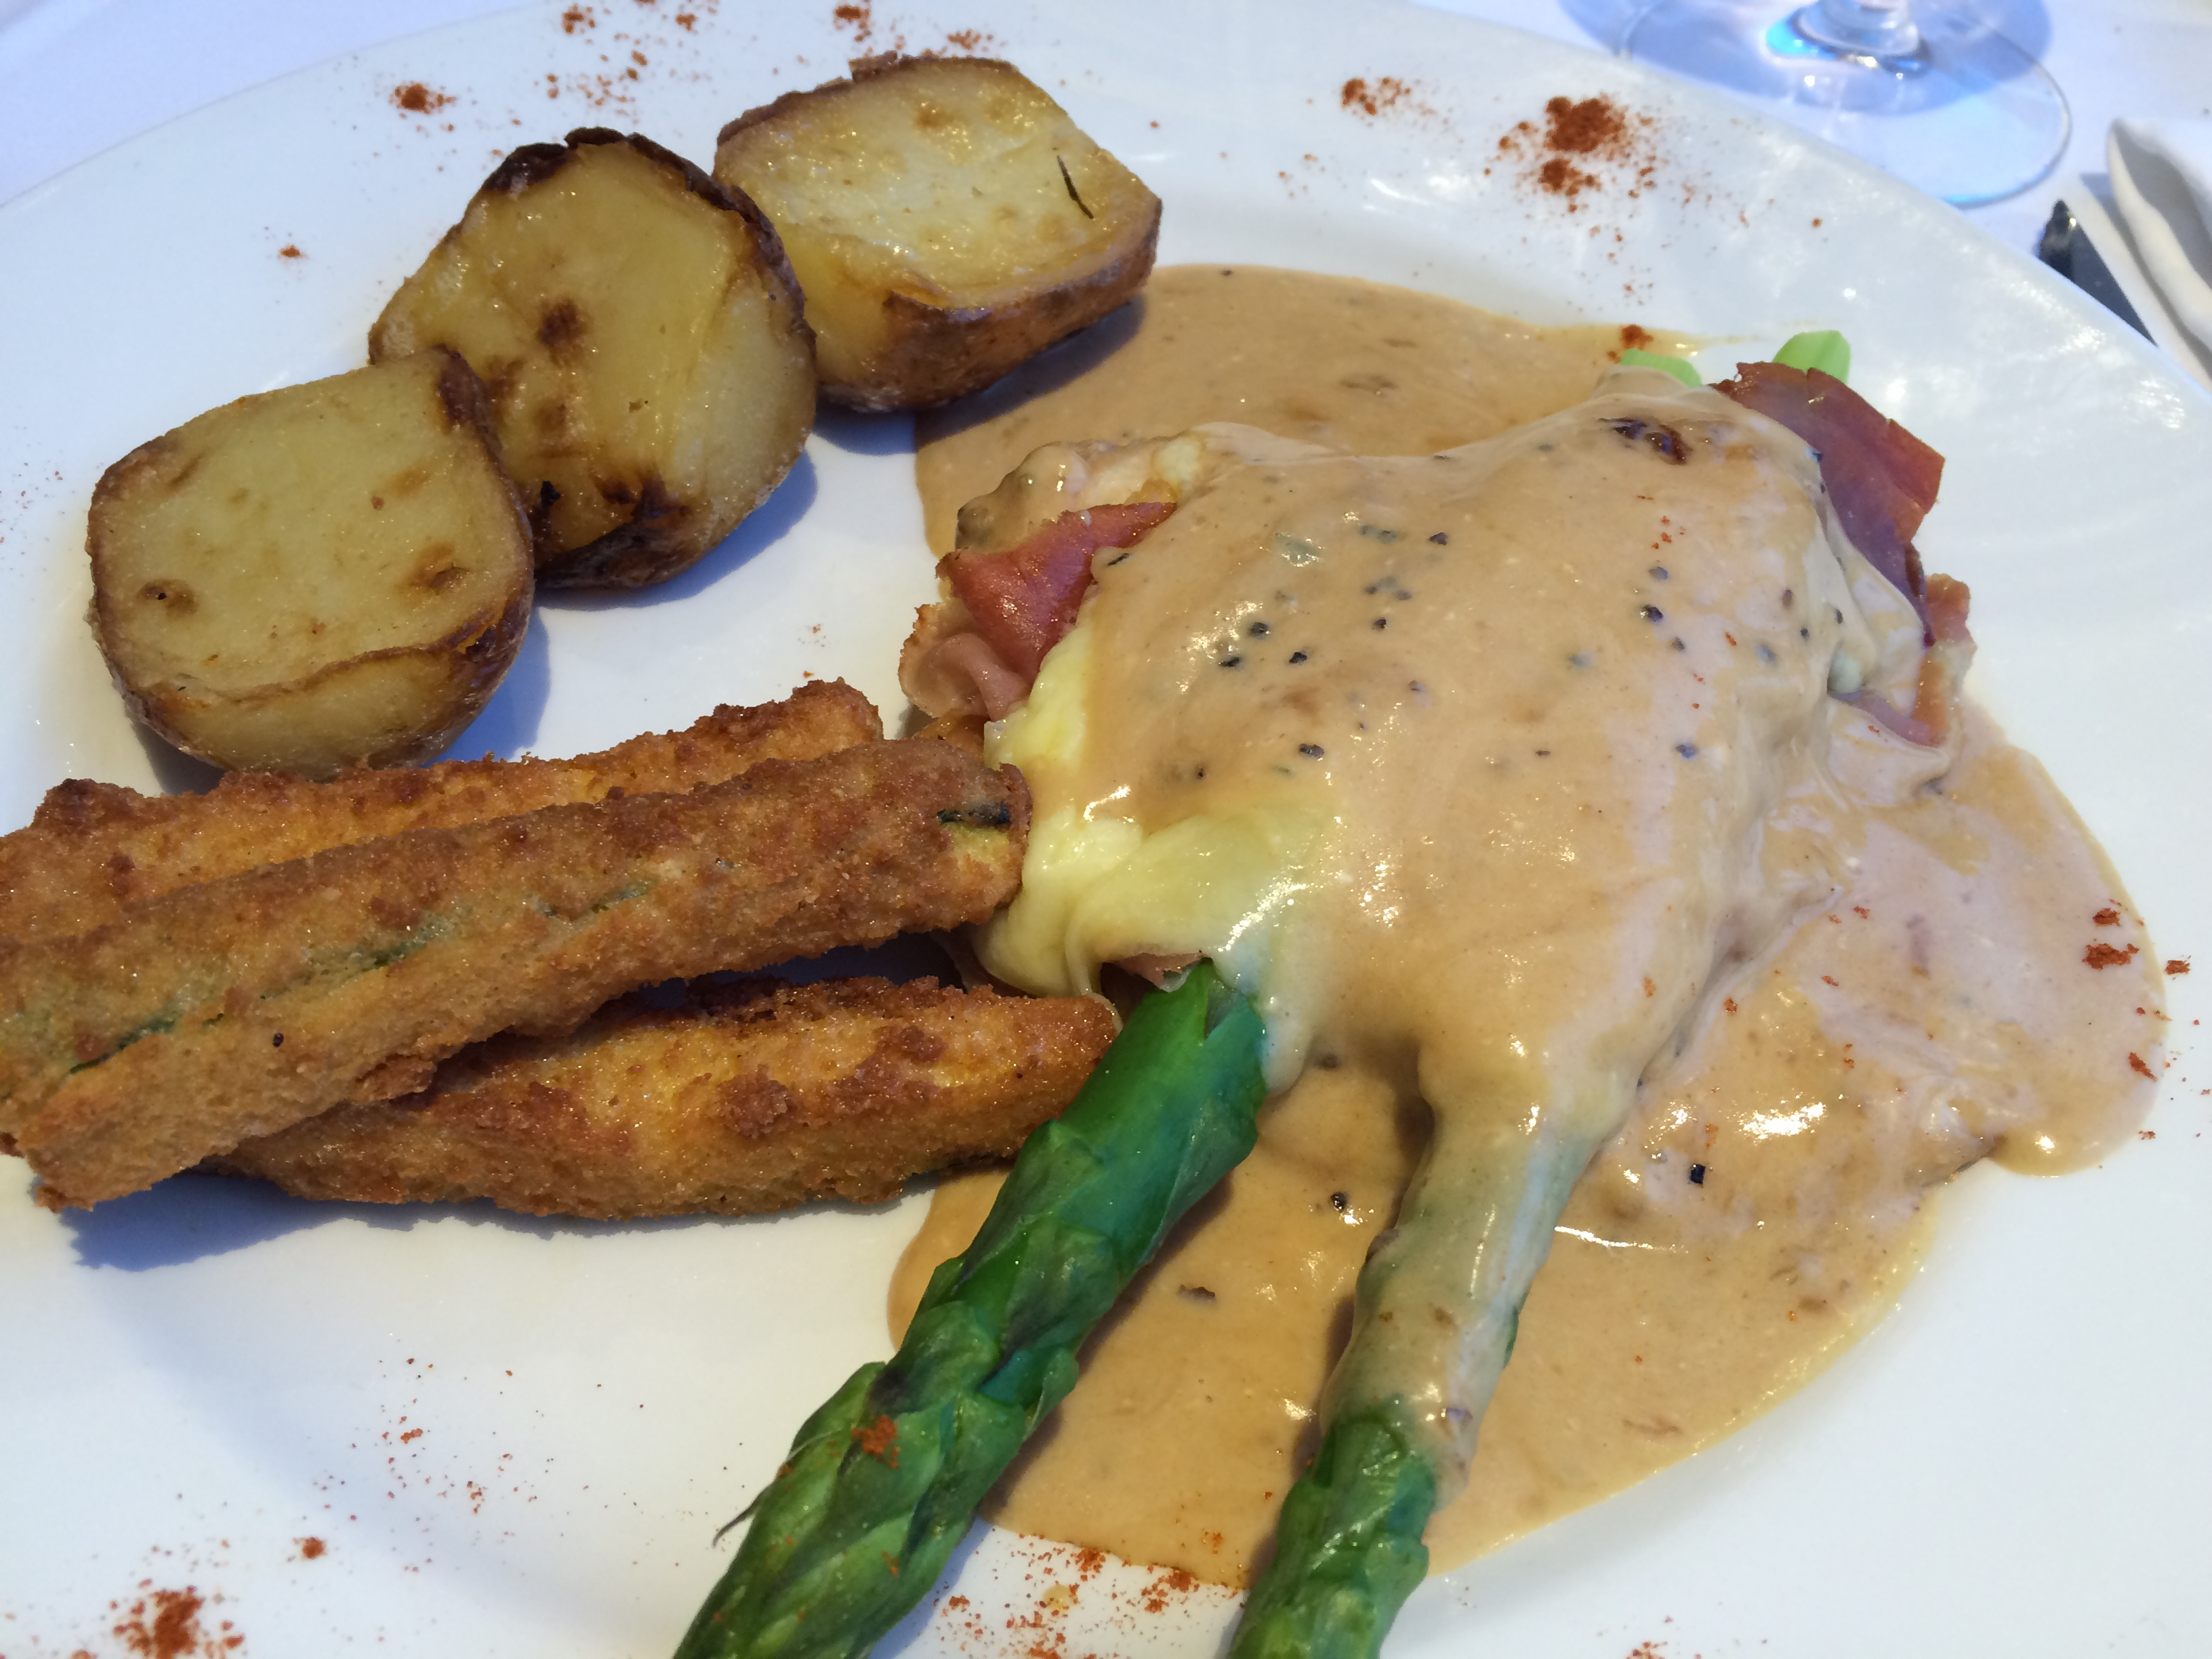 Chicken with asparagus and peppercorn sauce. Courgettes and oven potatoes.